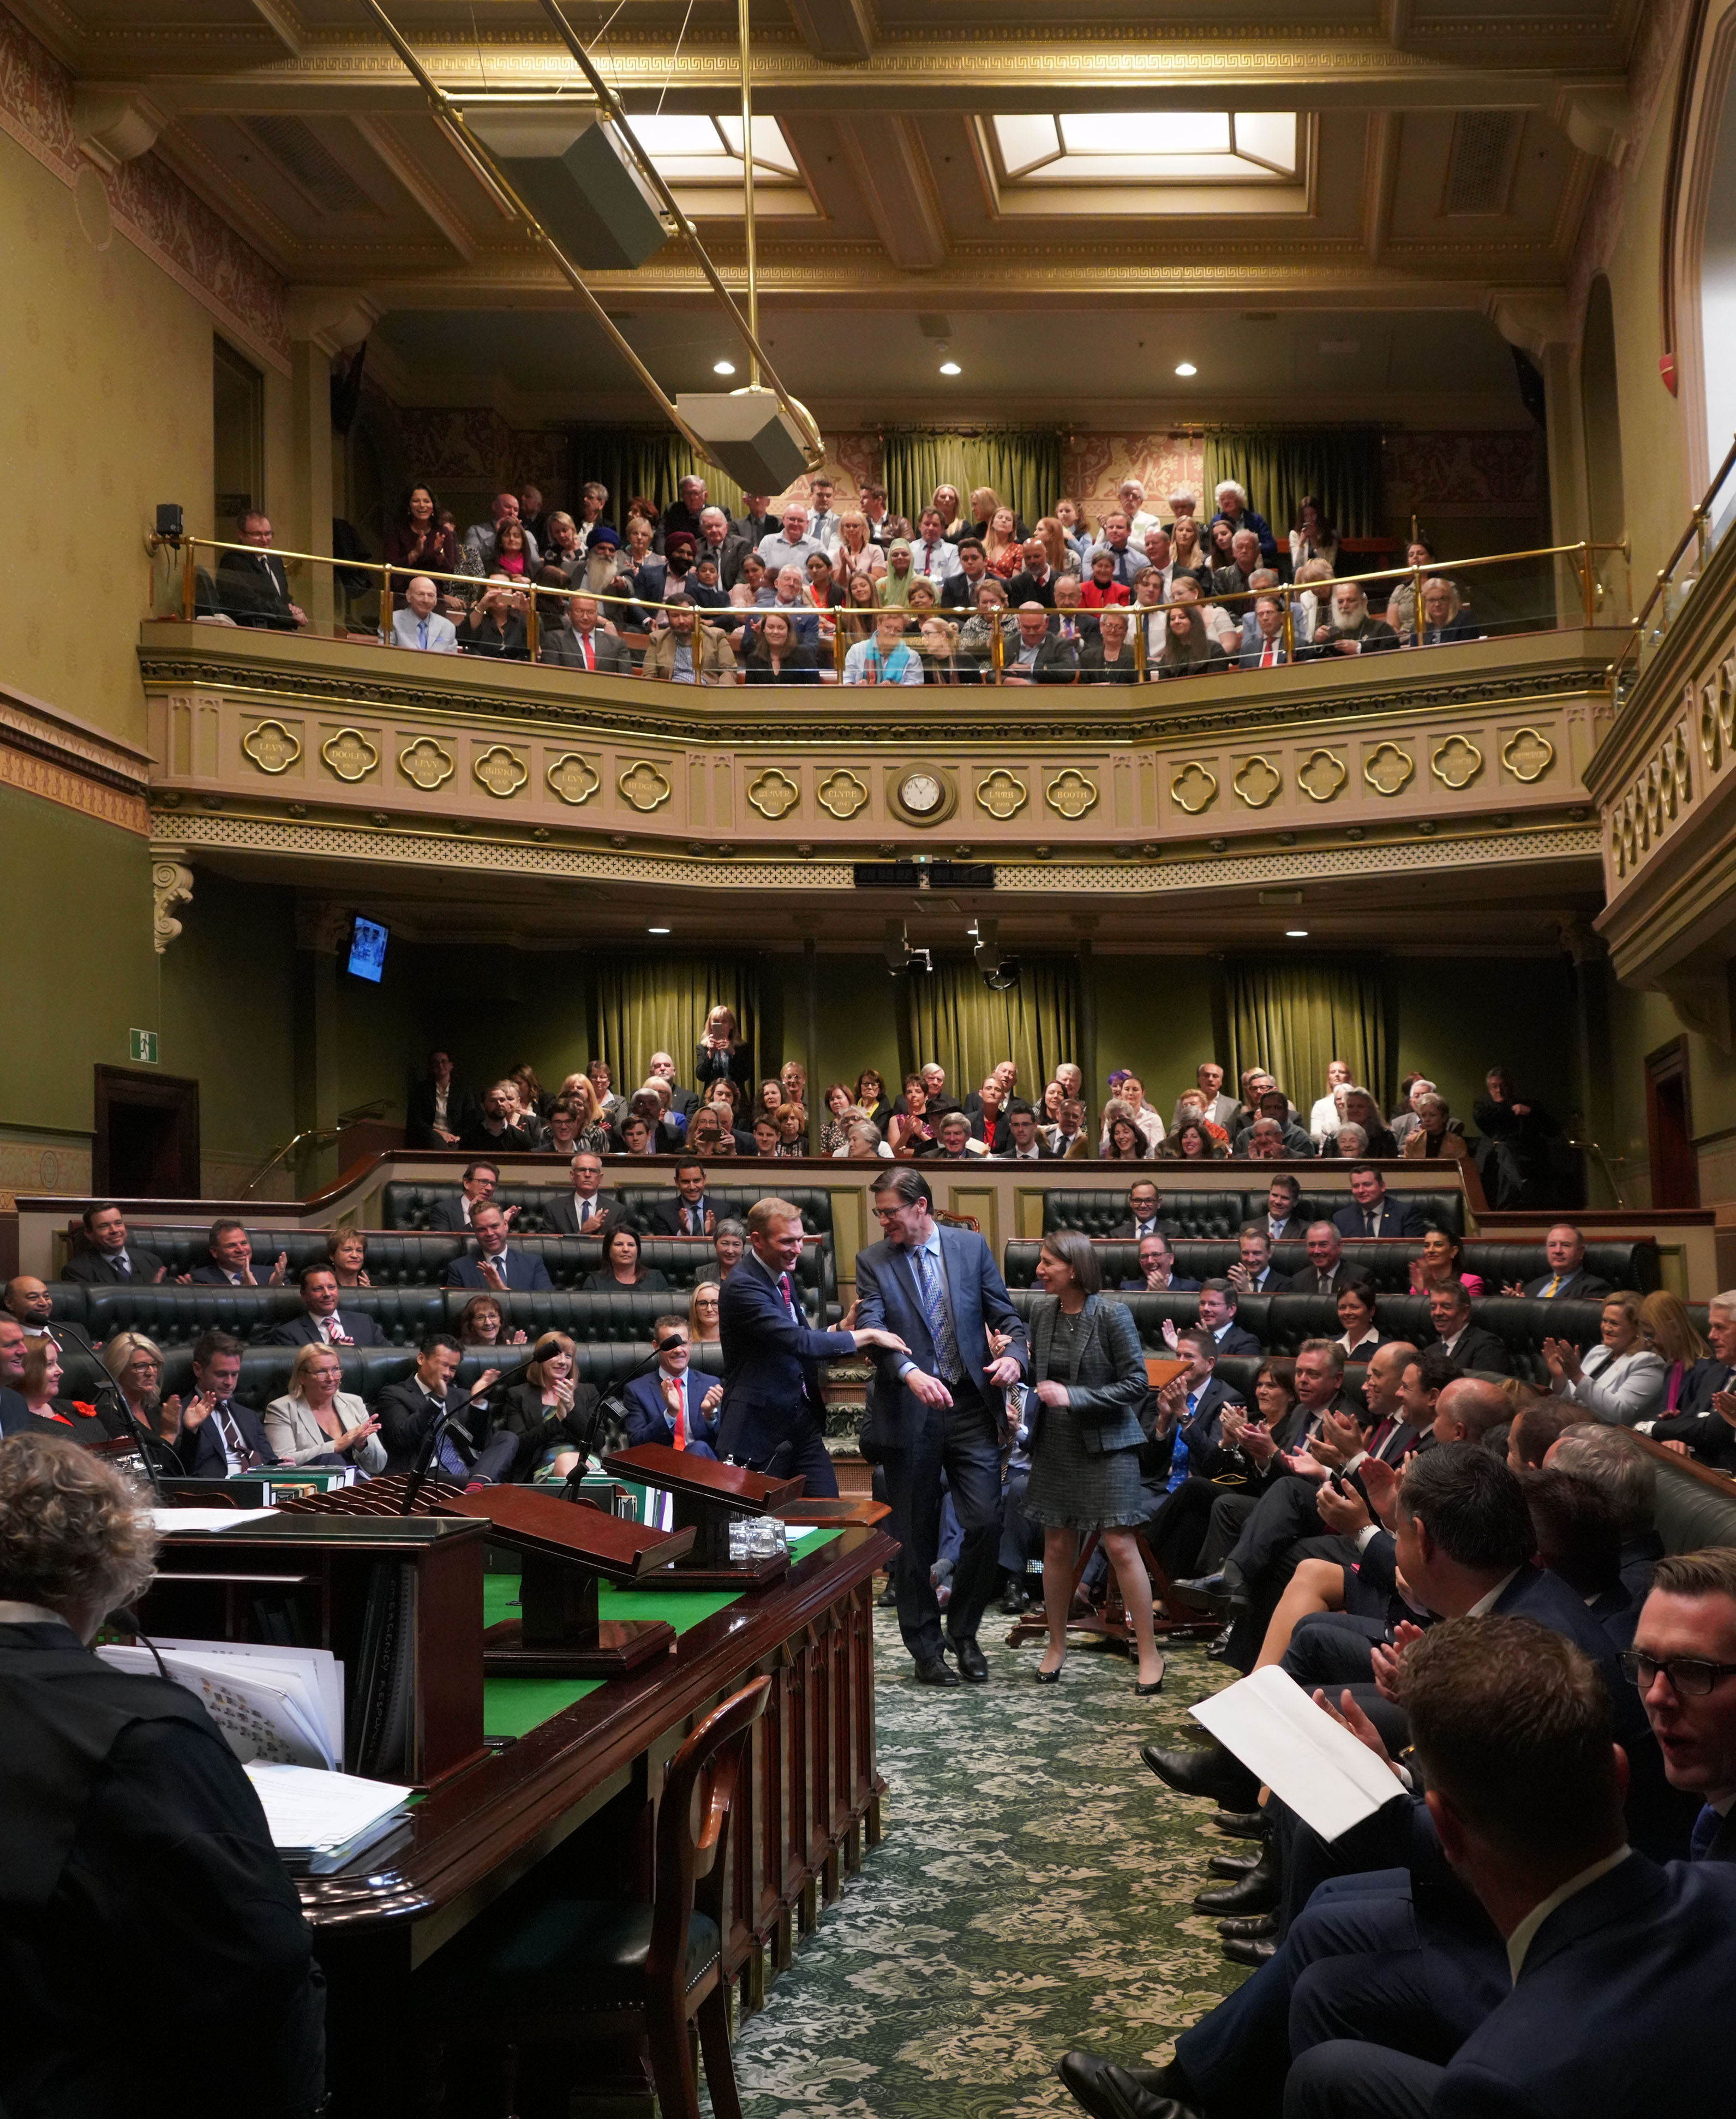 Jonathan O'Dea, the new Speaker of the NSW Legislative Assembly,dragged into service 7 May 2019 by Premer and Minister Stokes